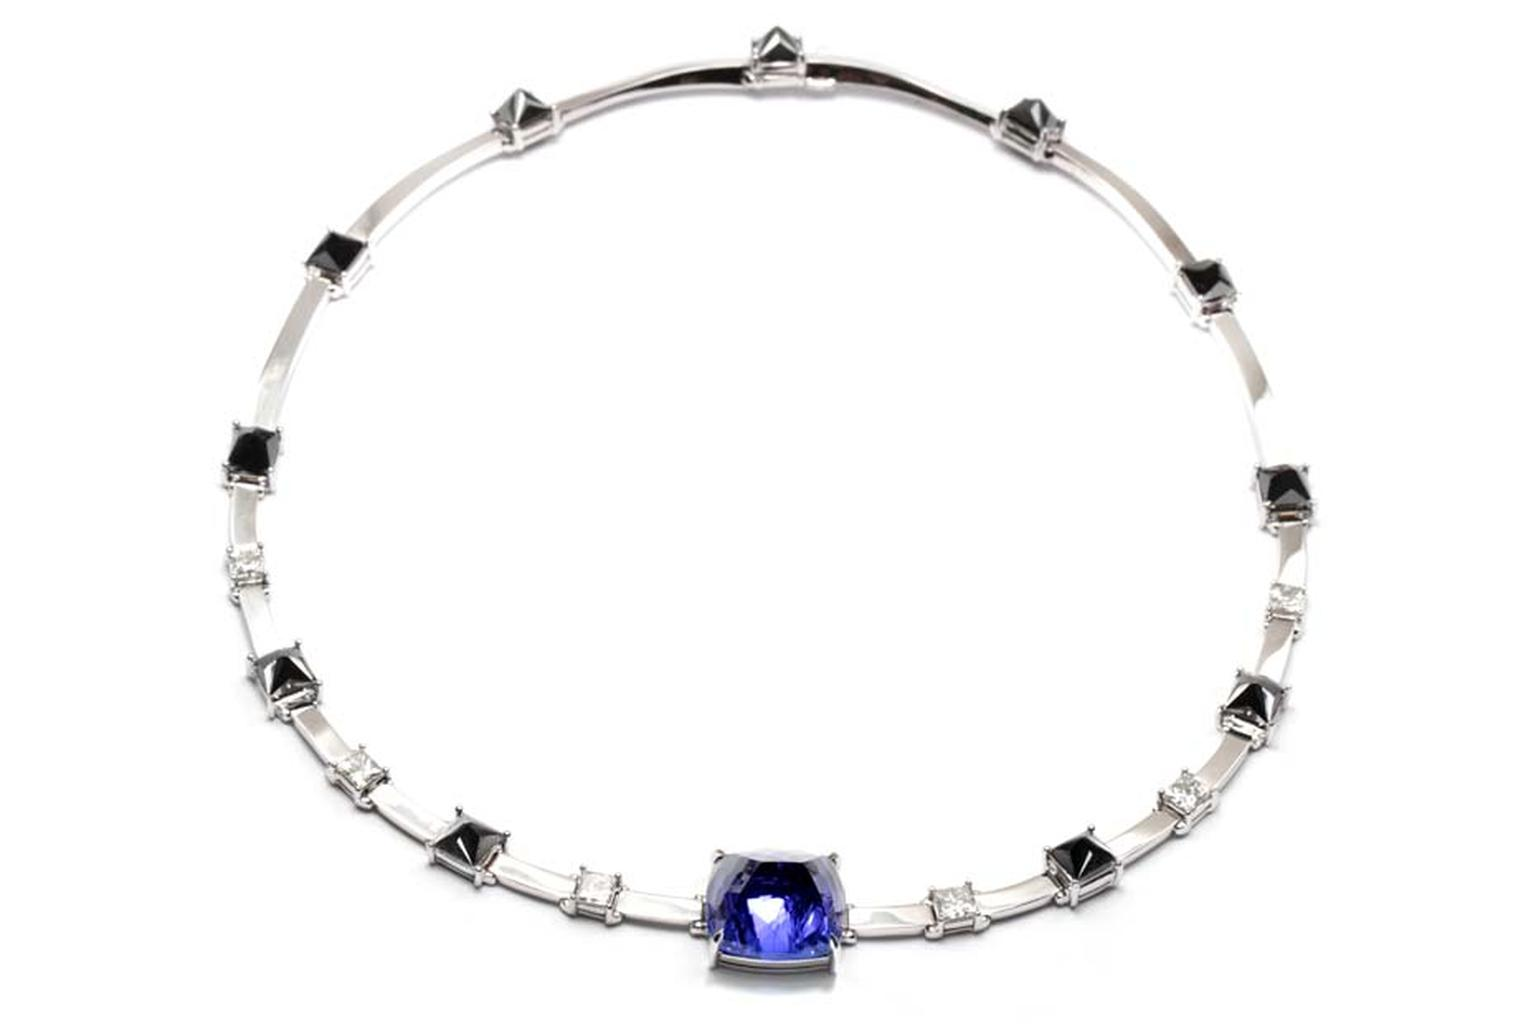 Ara Vartanian inverted tanzanite necklace in white gold with black and white diamonds.